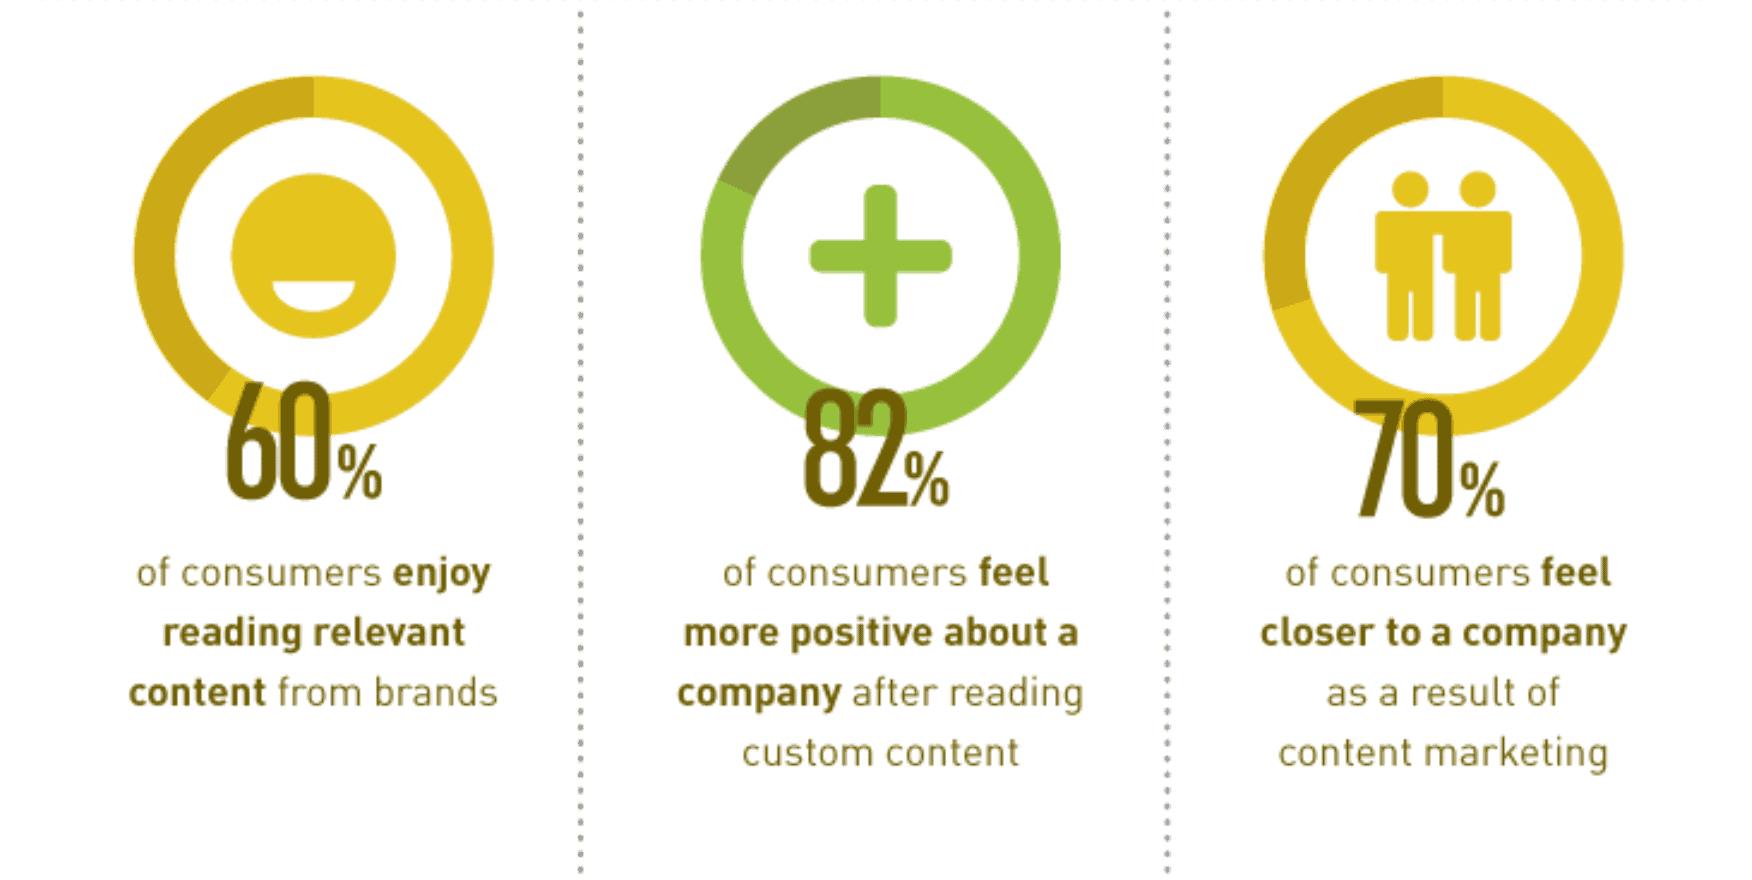 Your Louisville, KY business can be even more successful with content marketing.